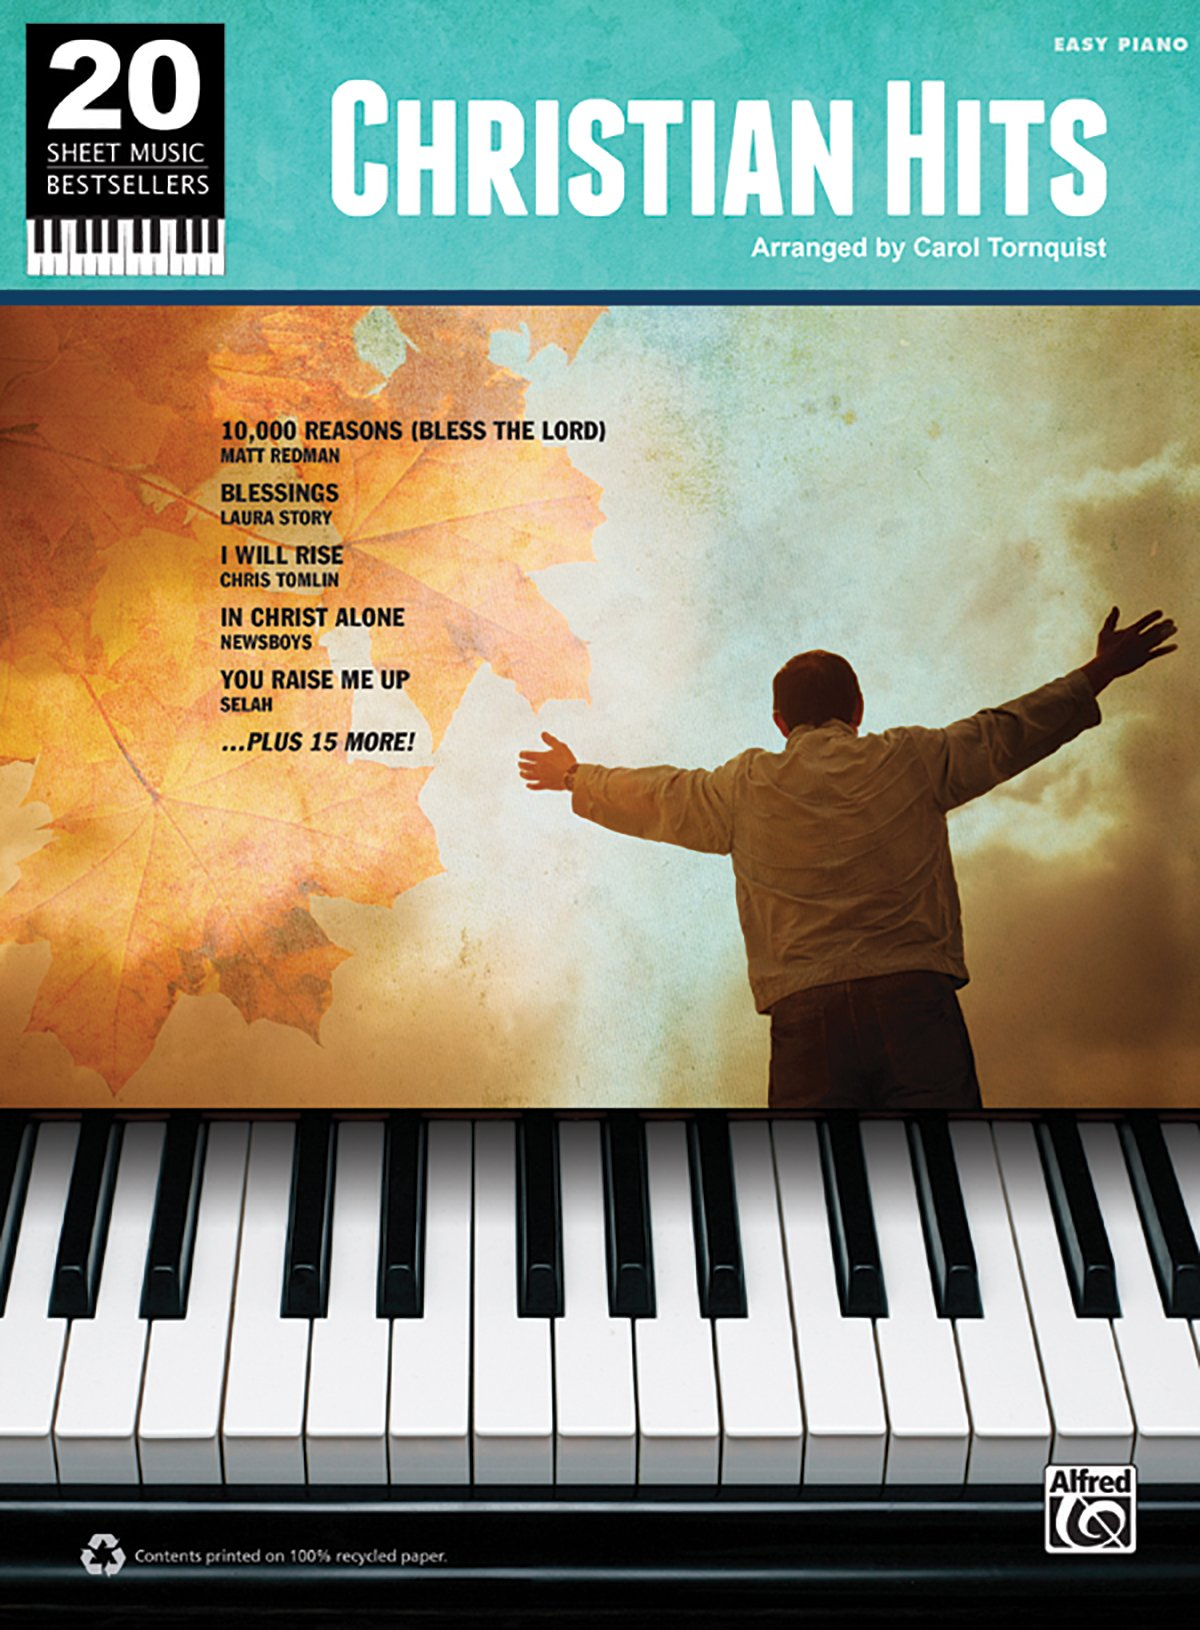 20 Sheet Music Bestsellers Christian product image